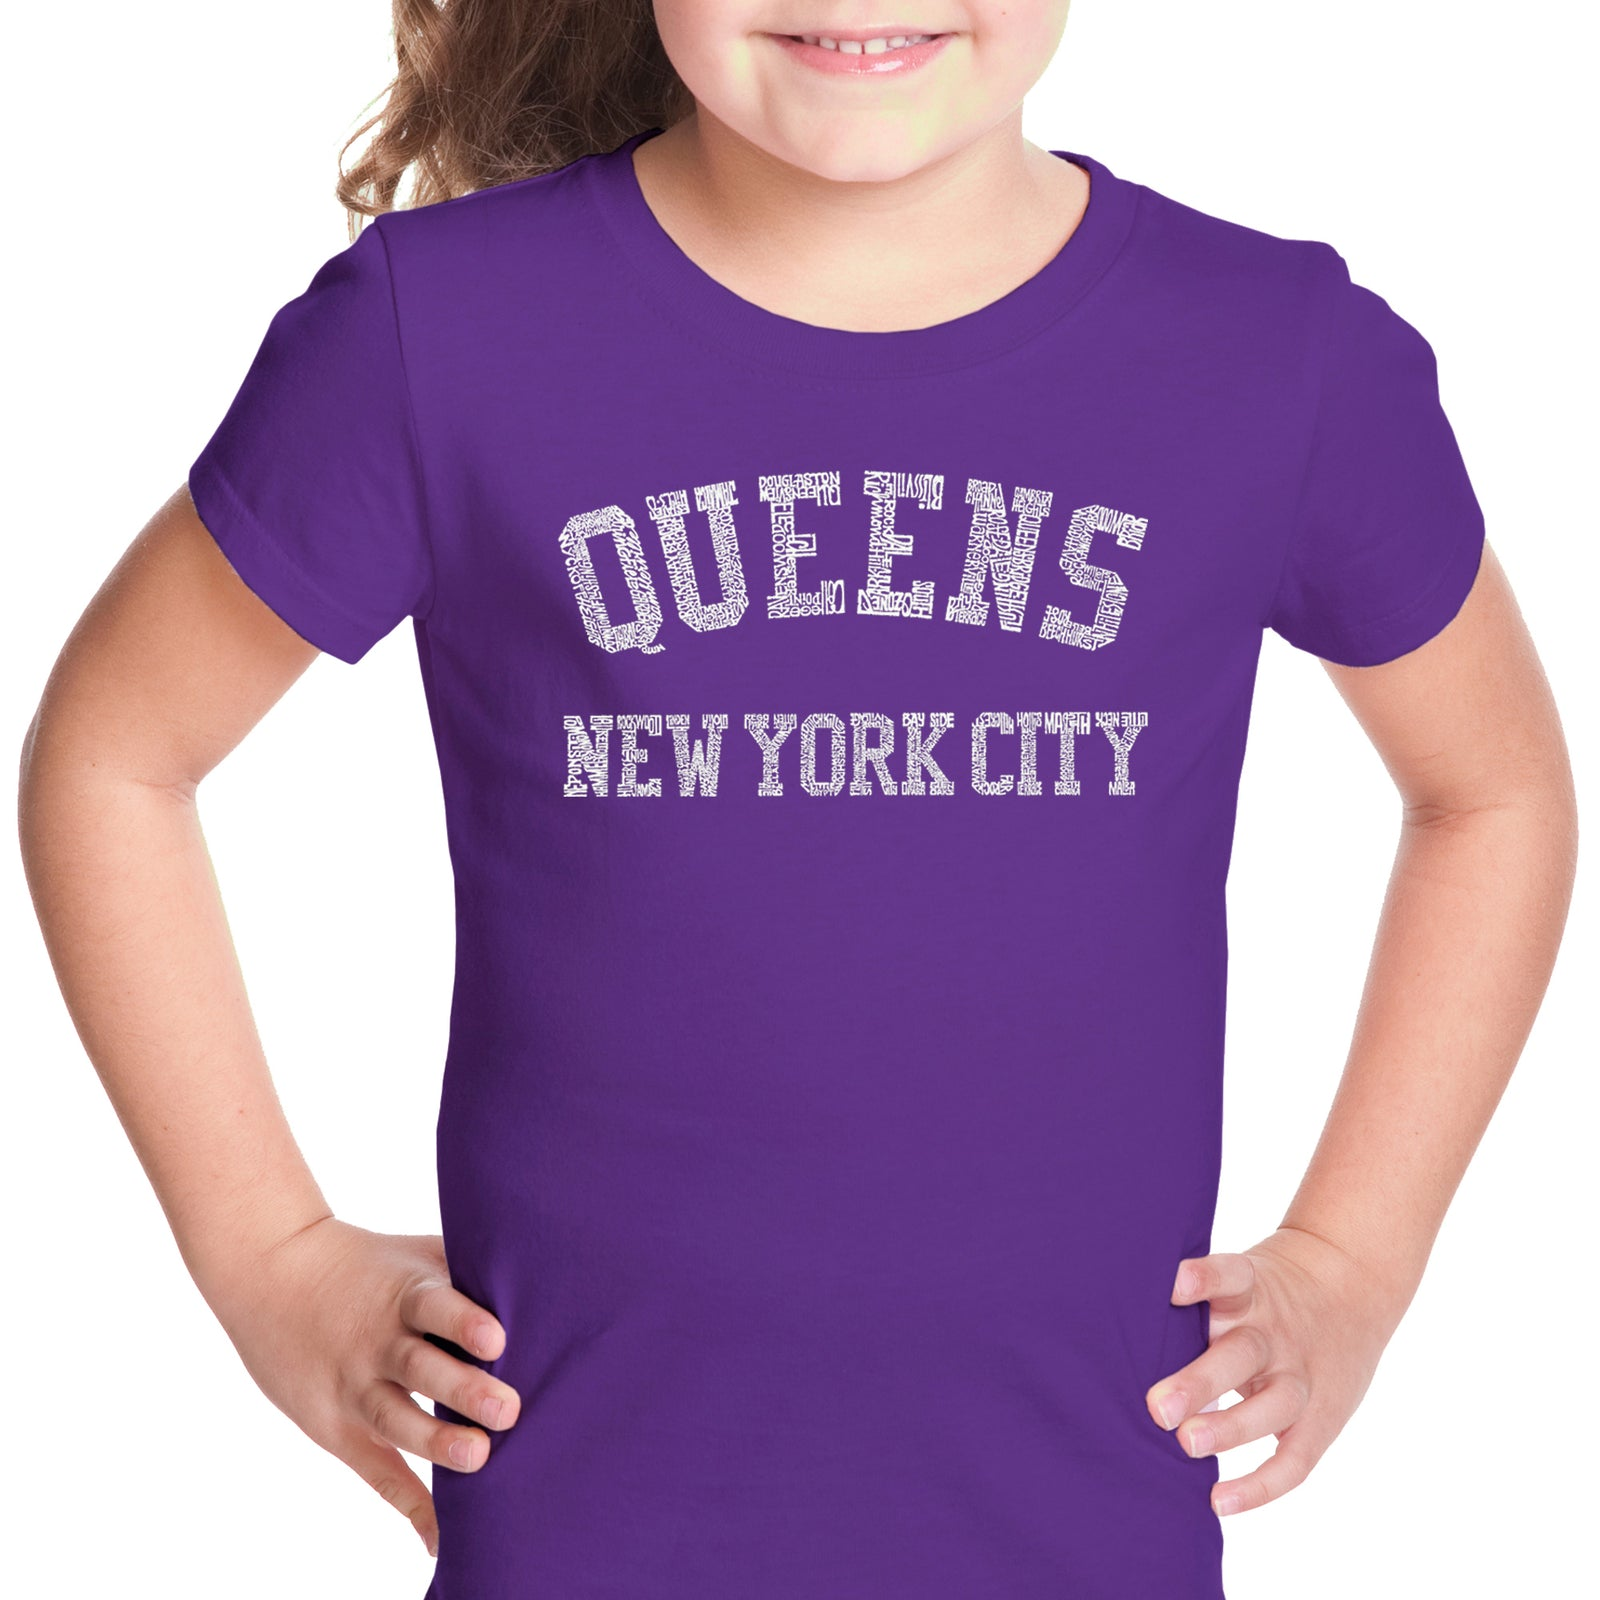 Girl's T-shirt - POPULAR NEIGHBORHOODS IN QUEENS, NY